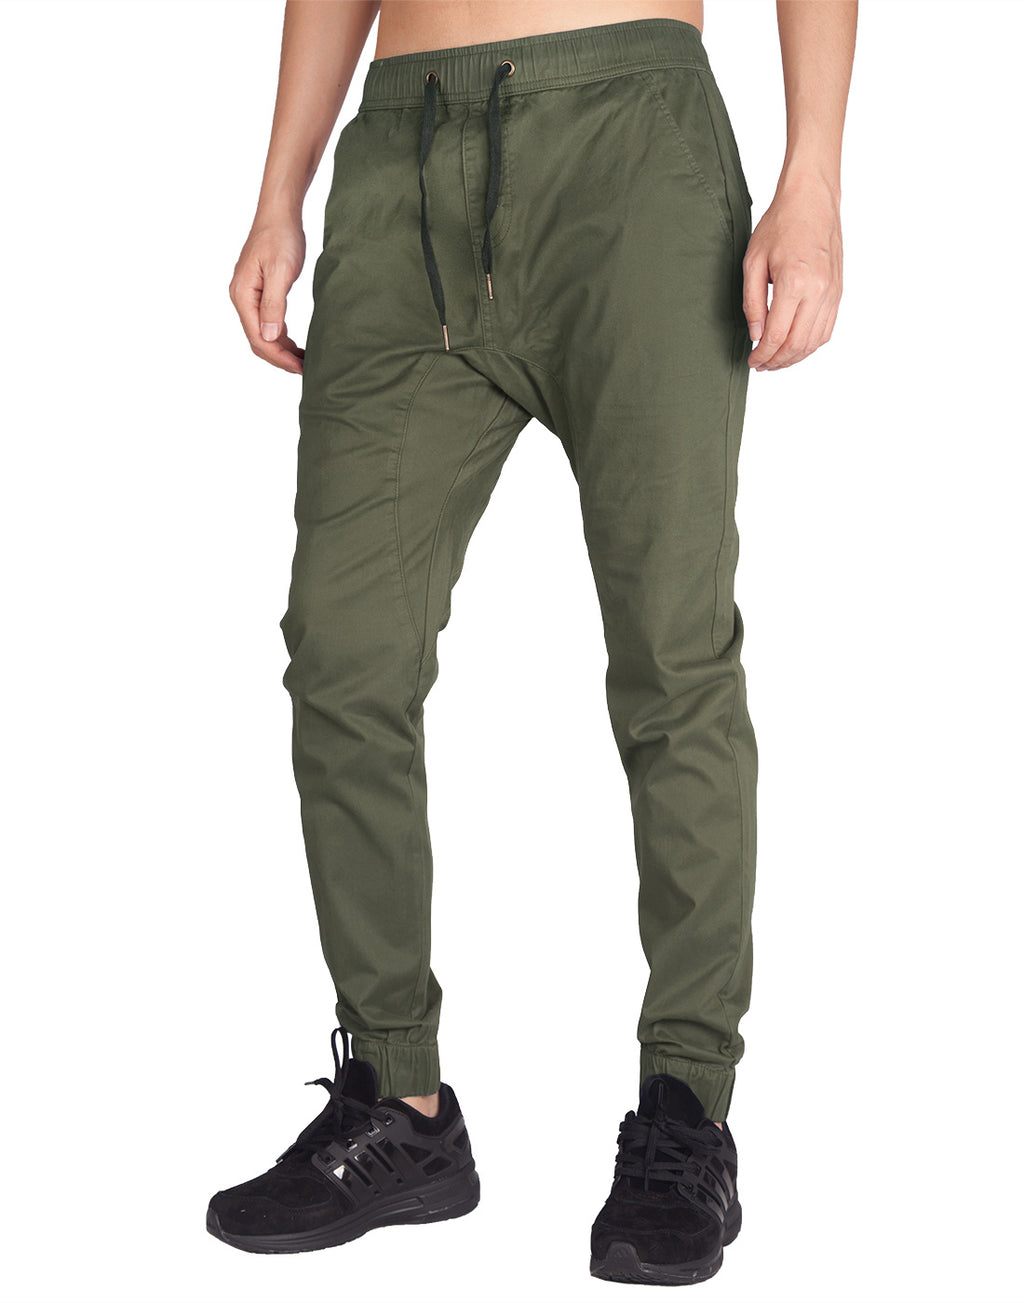 Man Drop Crotch Jogger Pants Army Green - italymorn